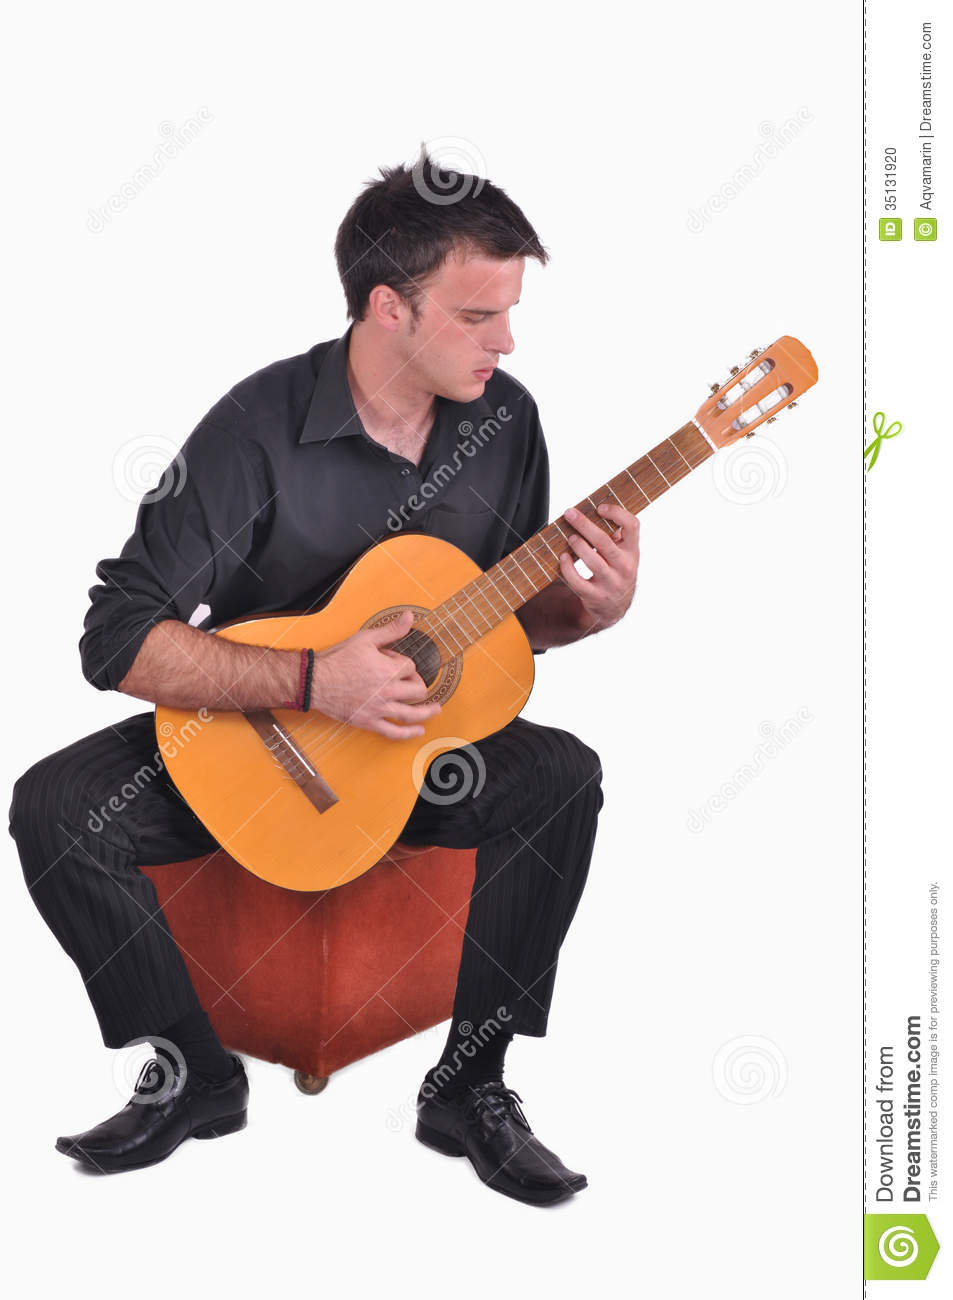 Flamenco Guitar Player Stock Photo Image 35131920